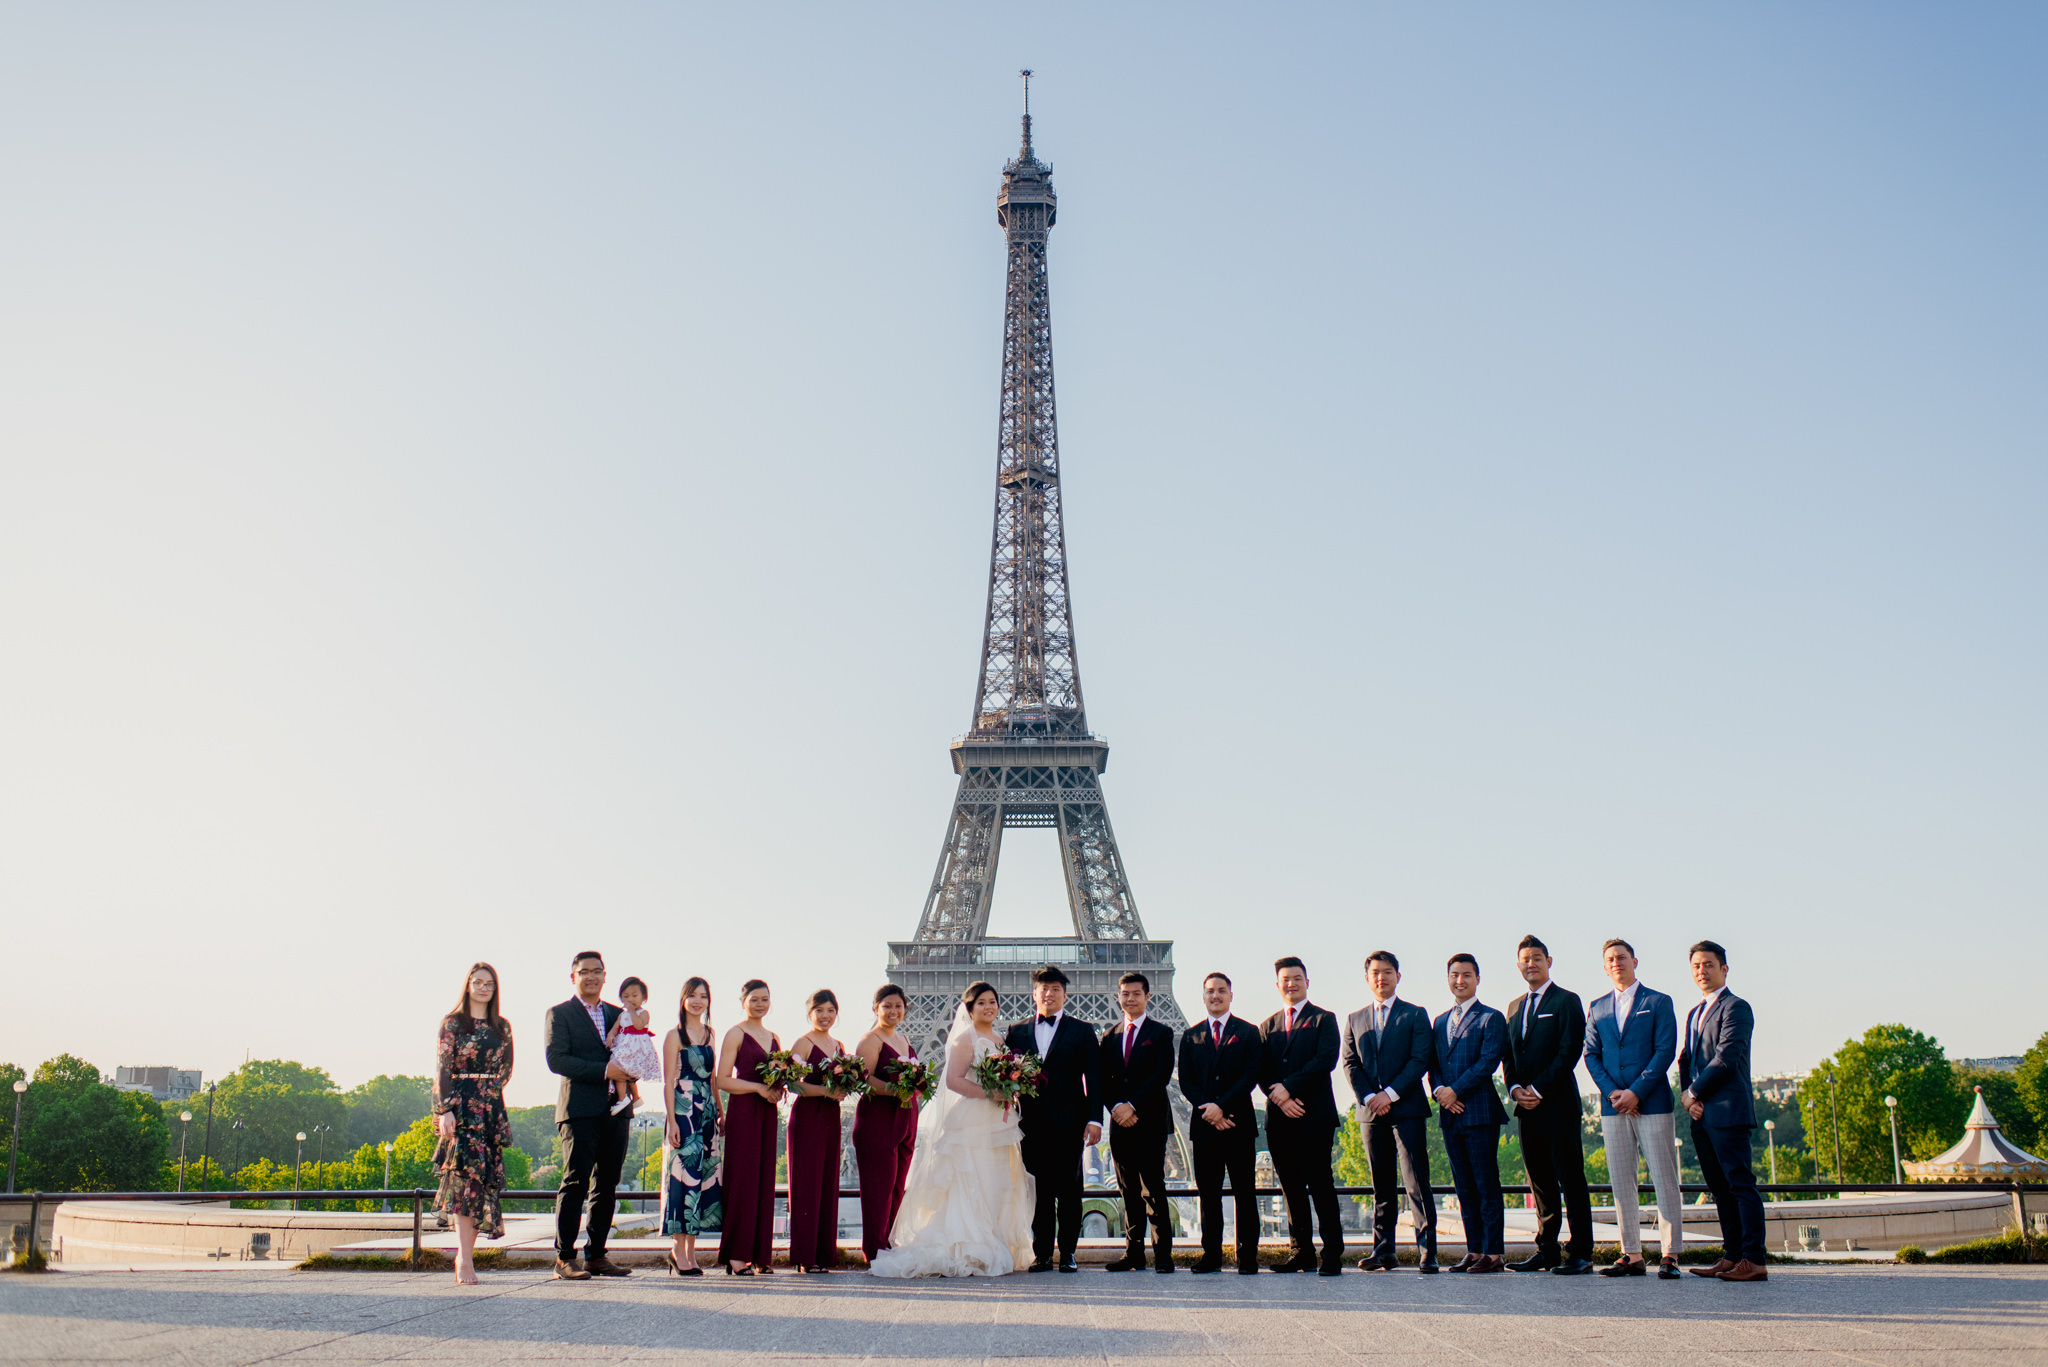 Wedding guests line up in front of the Eiffel Tower.